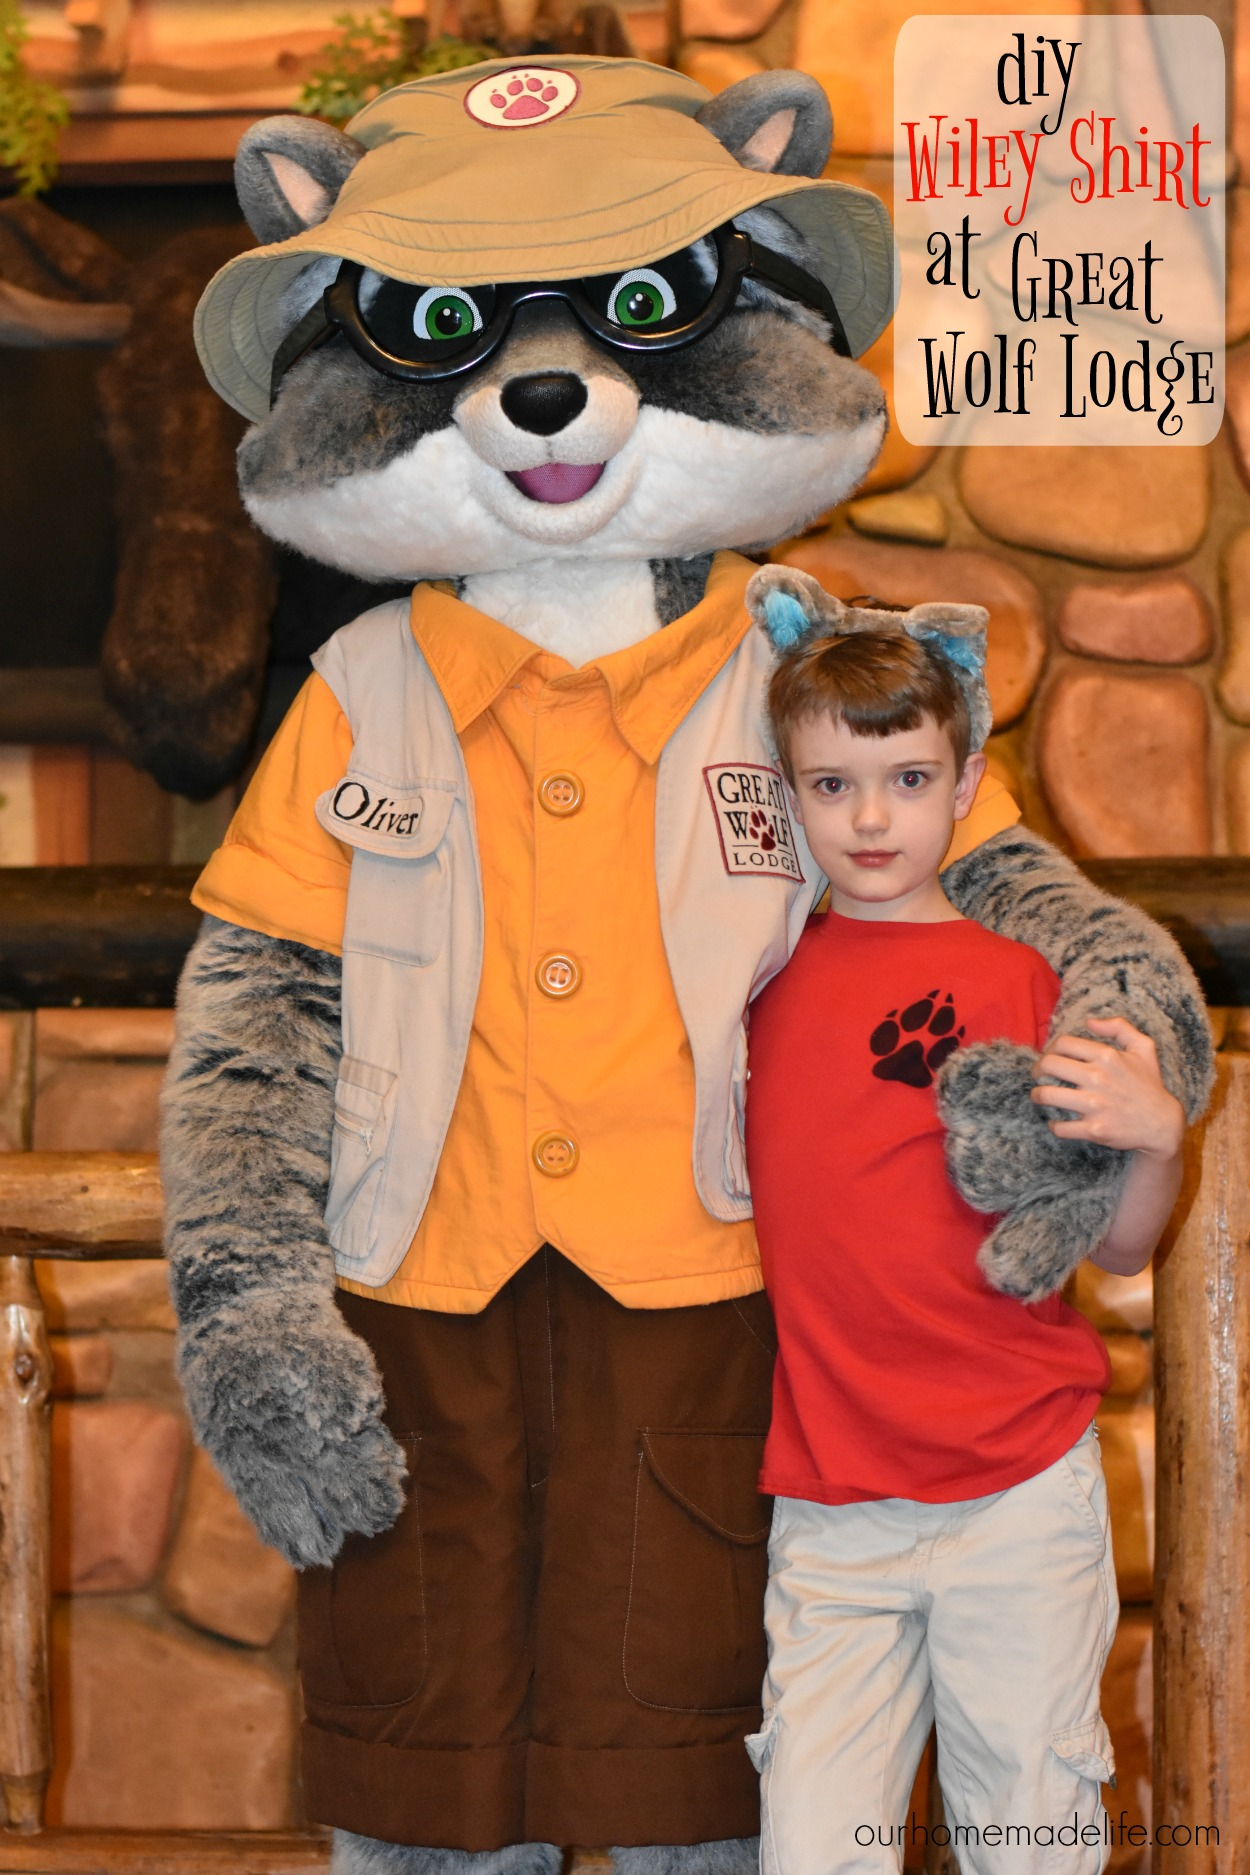 DIY Great Wolf Lodge Wiley Shirt